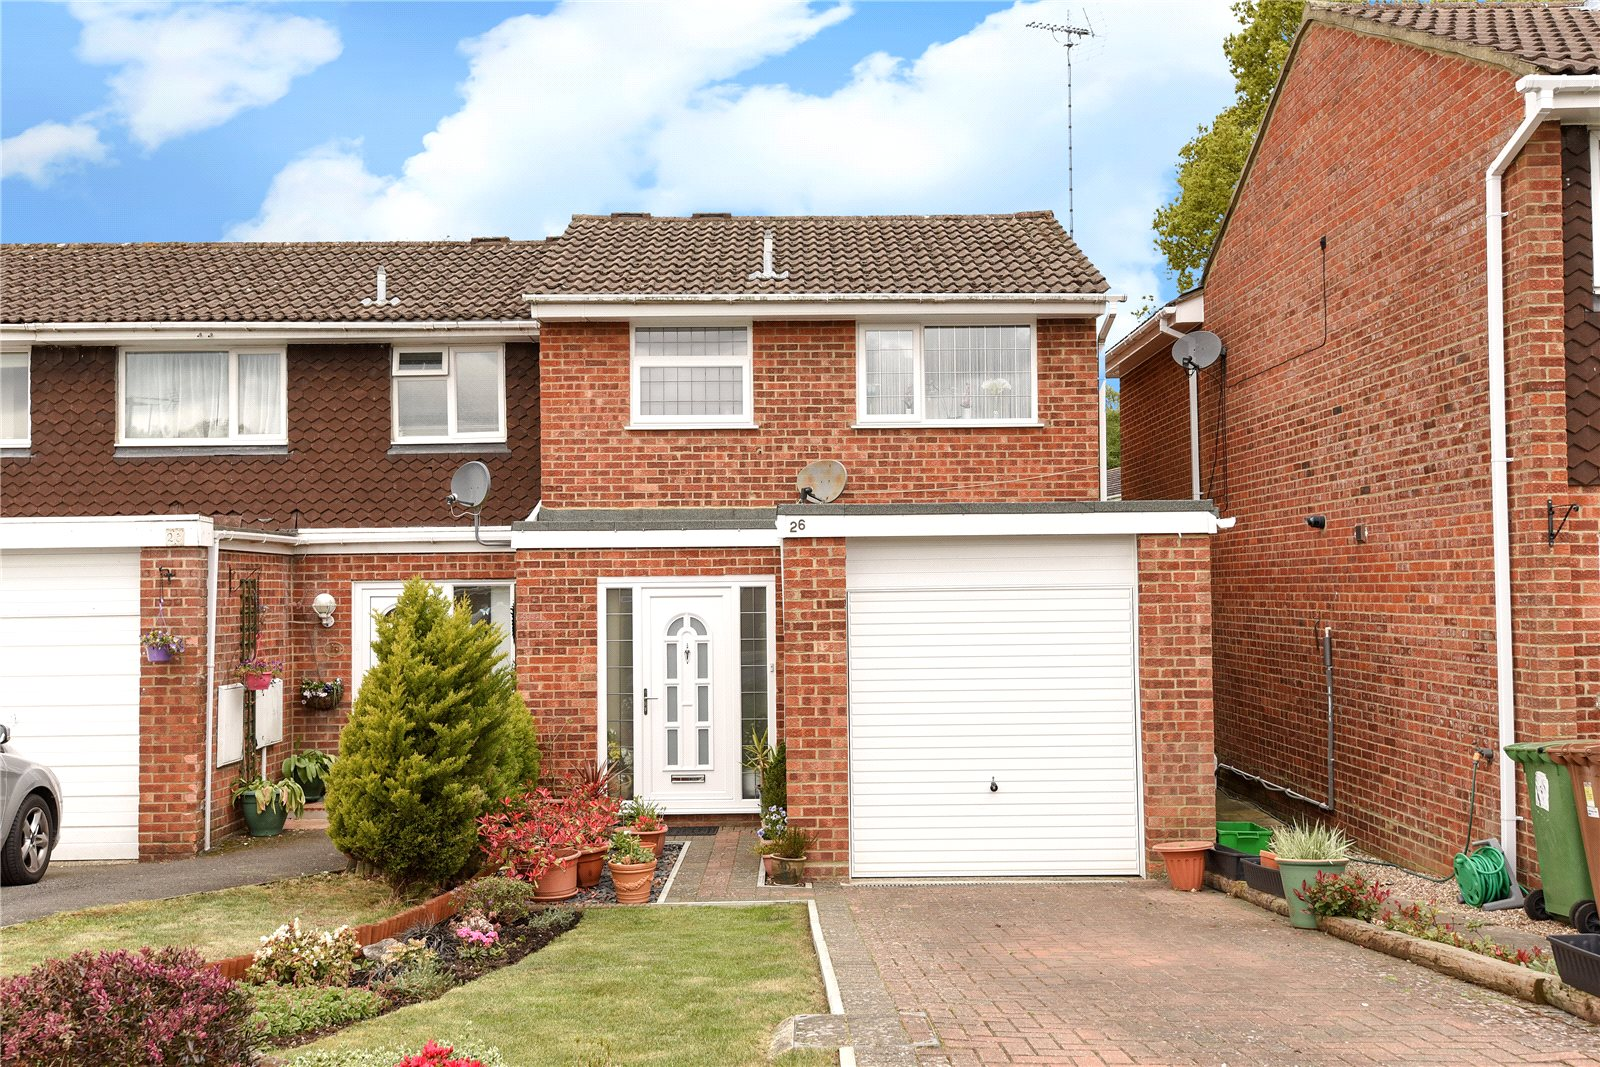 2 Bedrooms End Of Terrace House for sale in Keble Way, Owlsmoor, Sandhurst, Berkshire, GU47